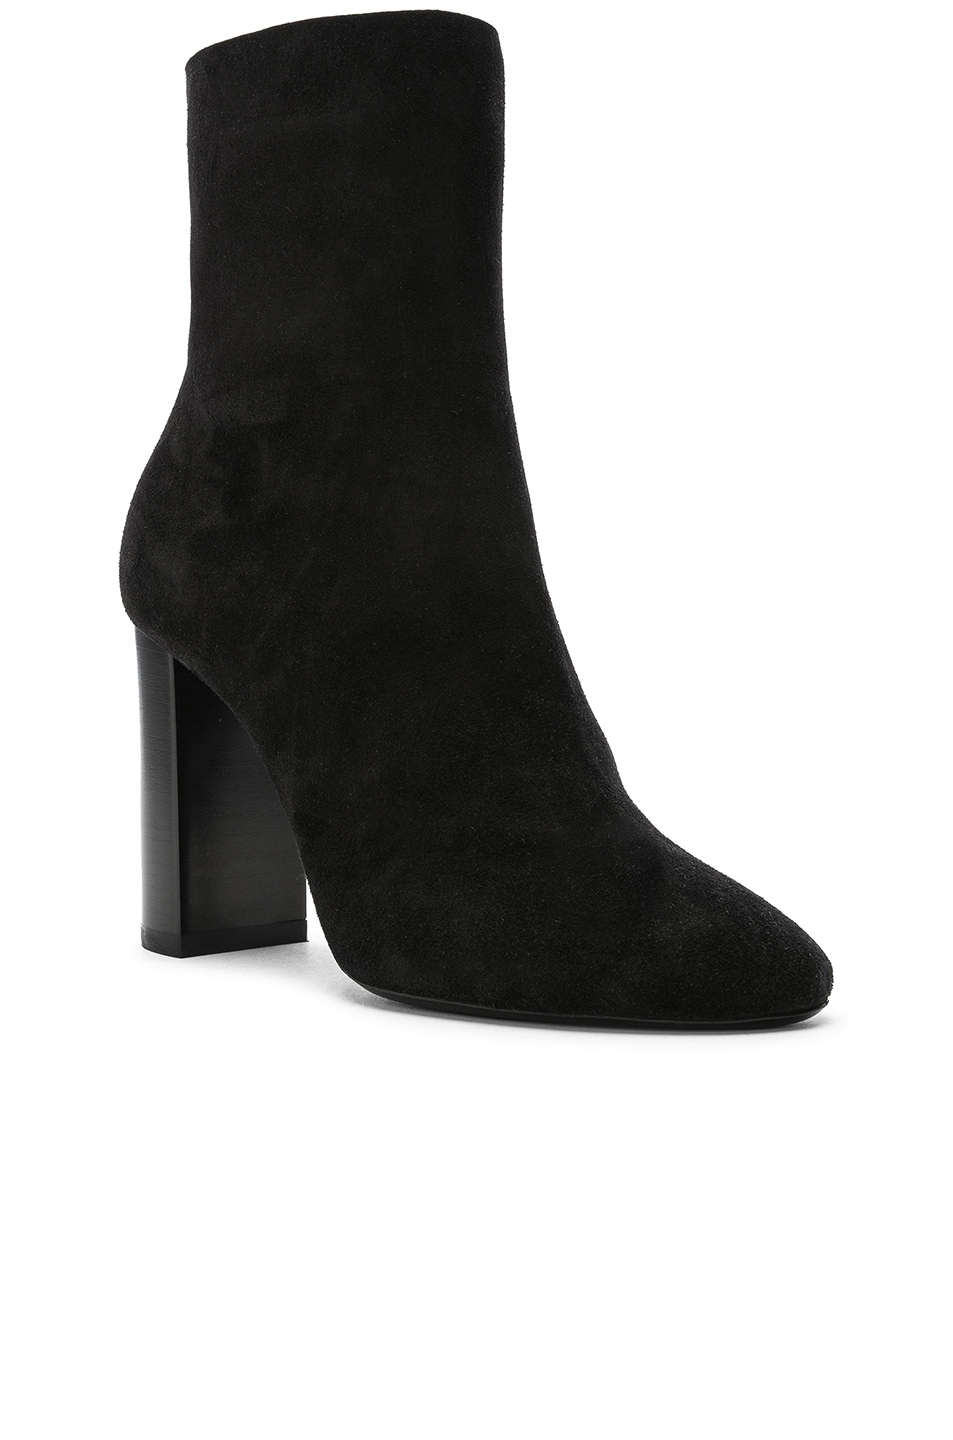 Image 2 of Saint Laurent Suede Lou Ankle Boots in Black